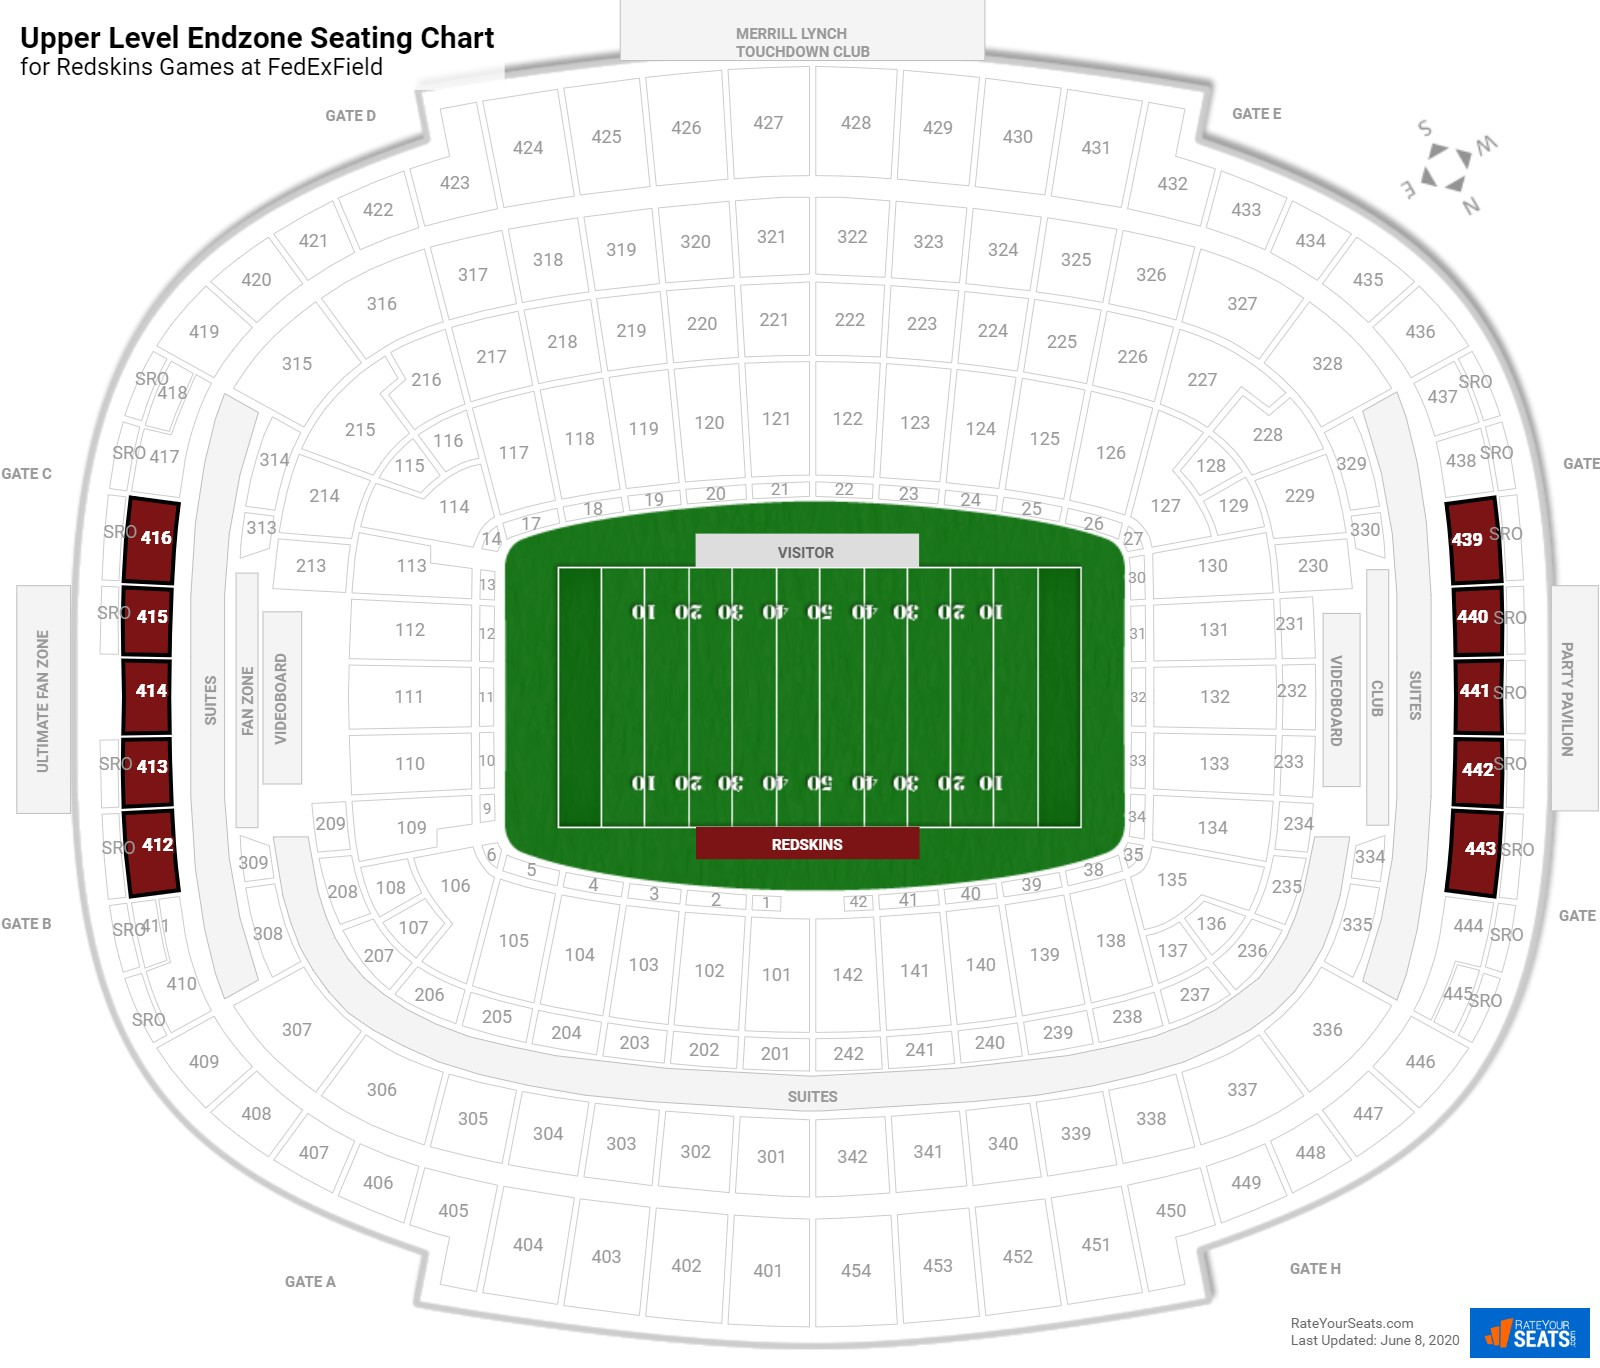 FedExField Upper Level Endzone seating chart